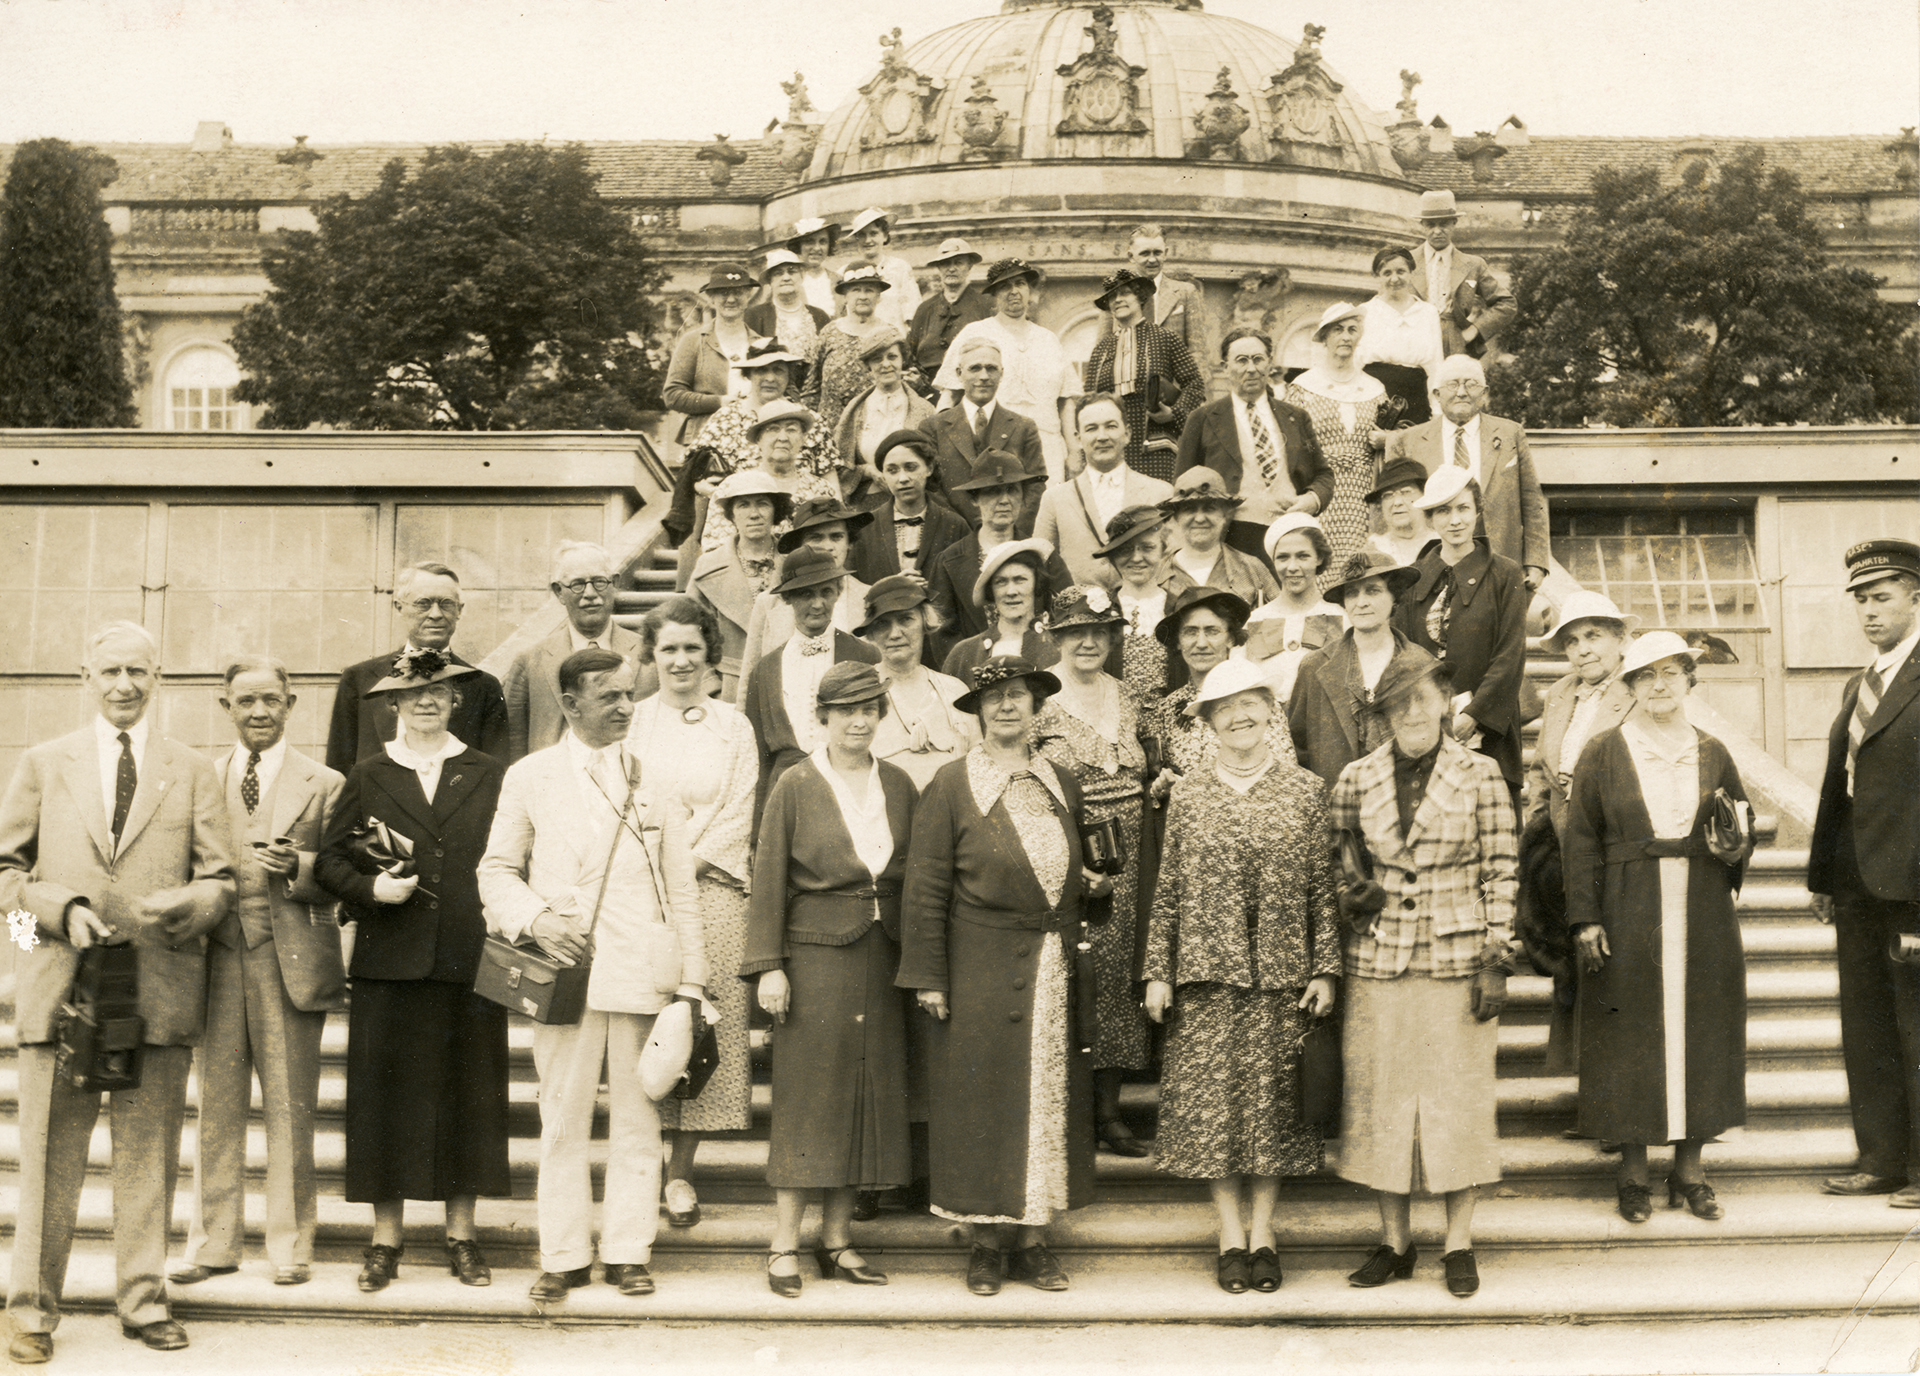 Picture of the Goodwill Christian Tour Group, including Mrs. Lilian Lunney, in Germany on July 21st, 1936.